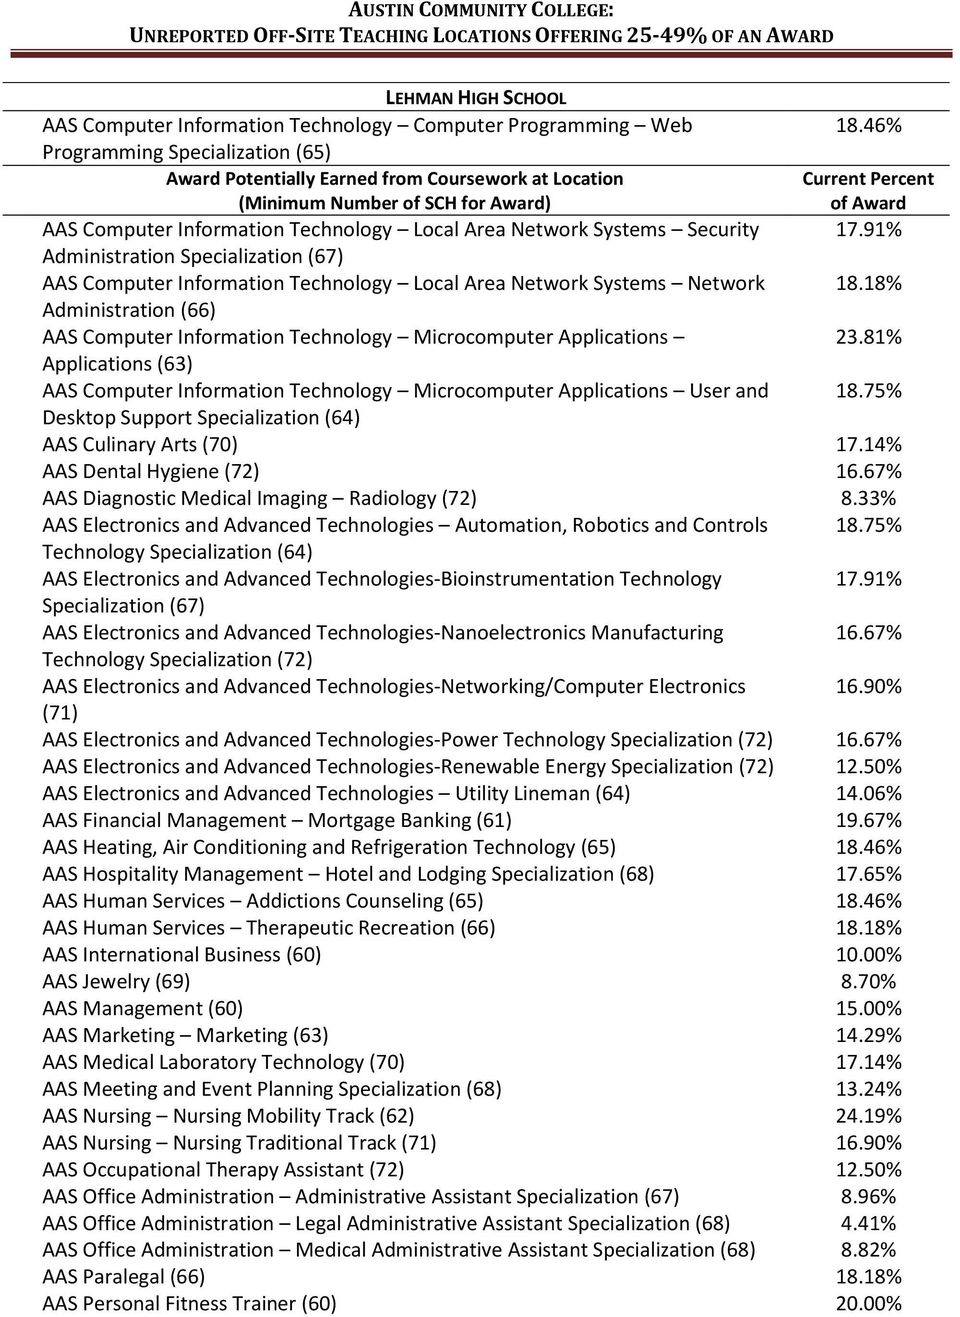 Technology Microcomputer Applications User and 18.46% Current Percent of Award 18.18% 23.81% 18.75% Desktop Support Specialization (64) AAS Culinary Arts (70) 17.14% AAS Dental Hygiene (72) 16.